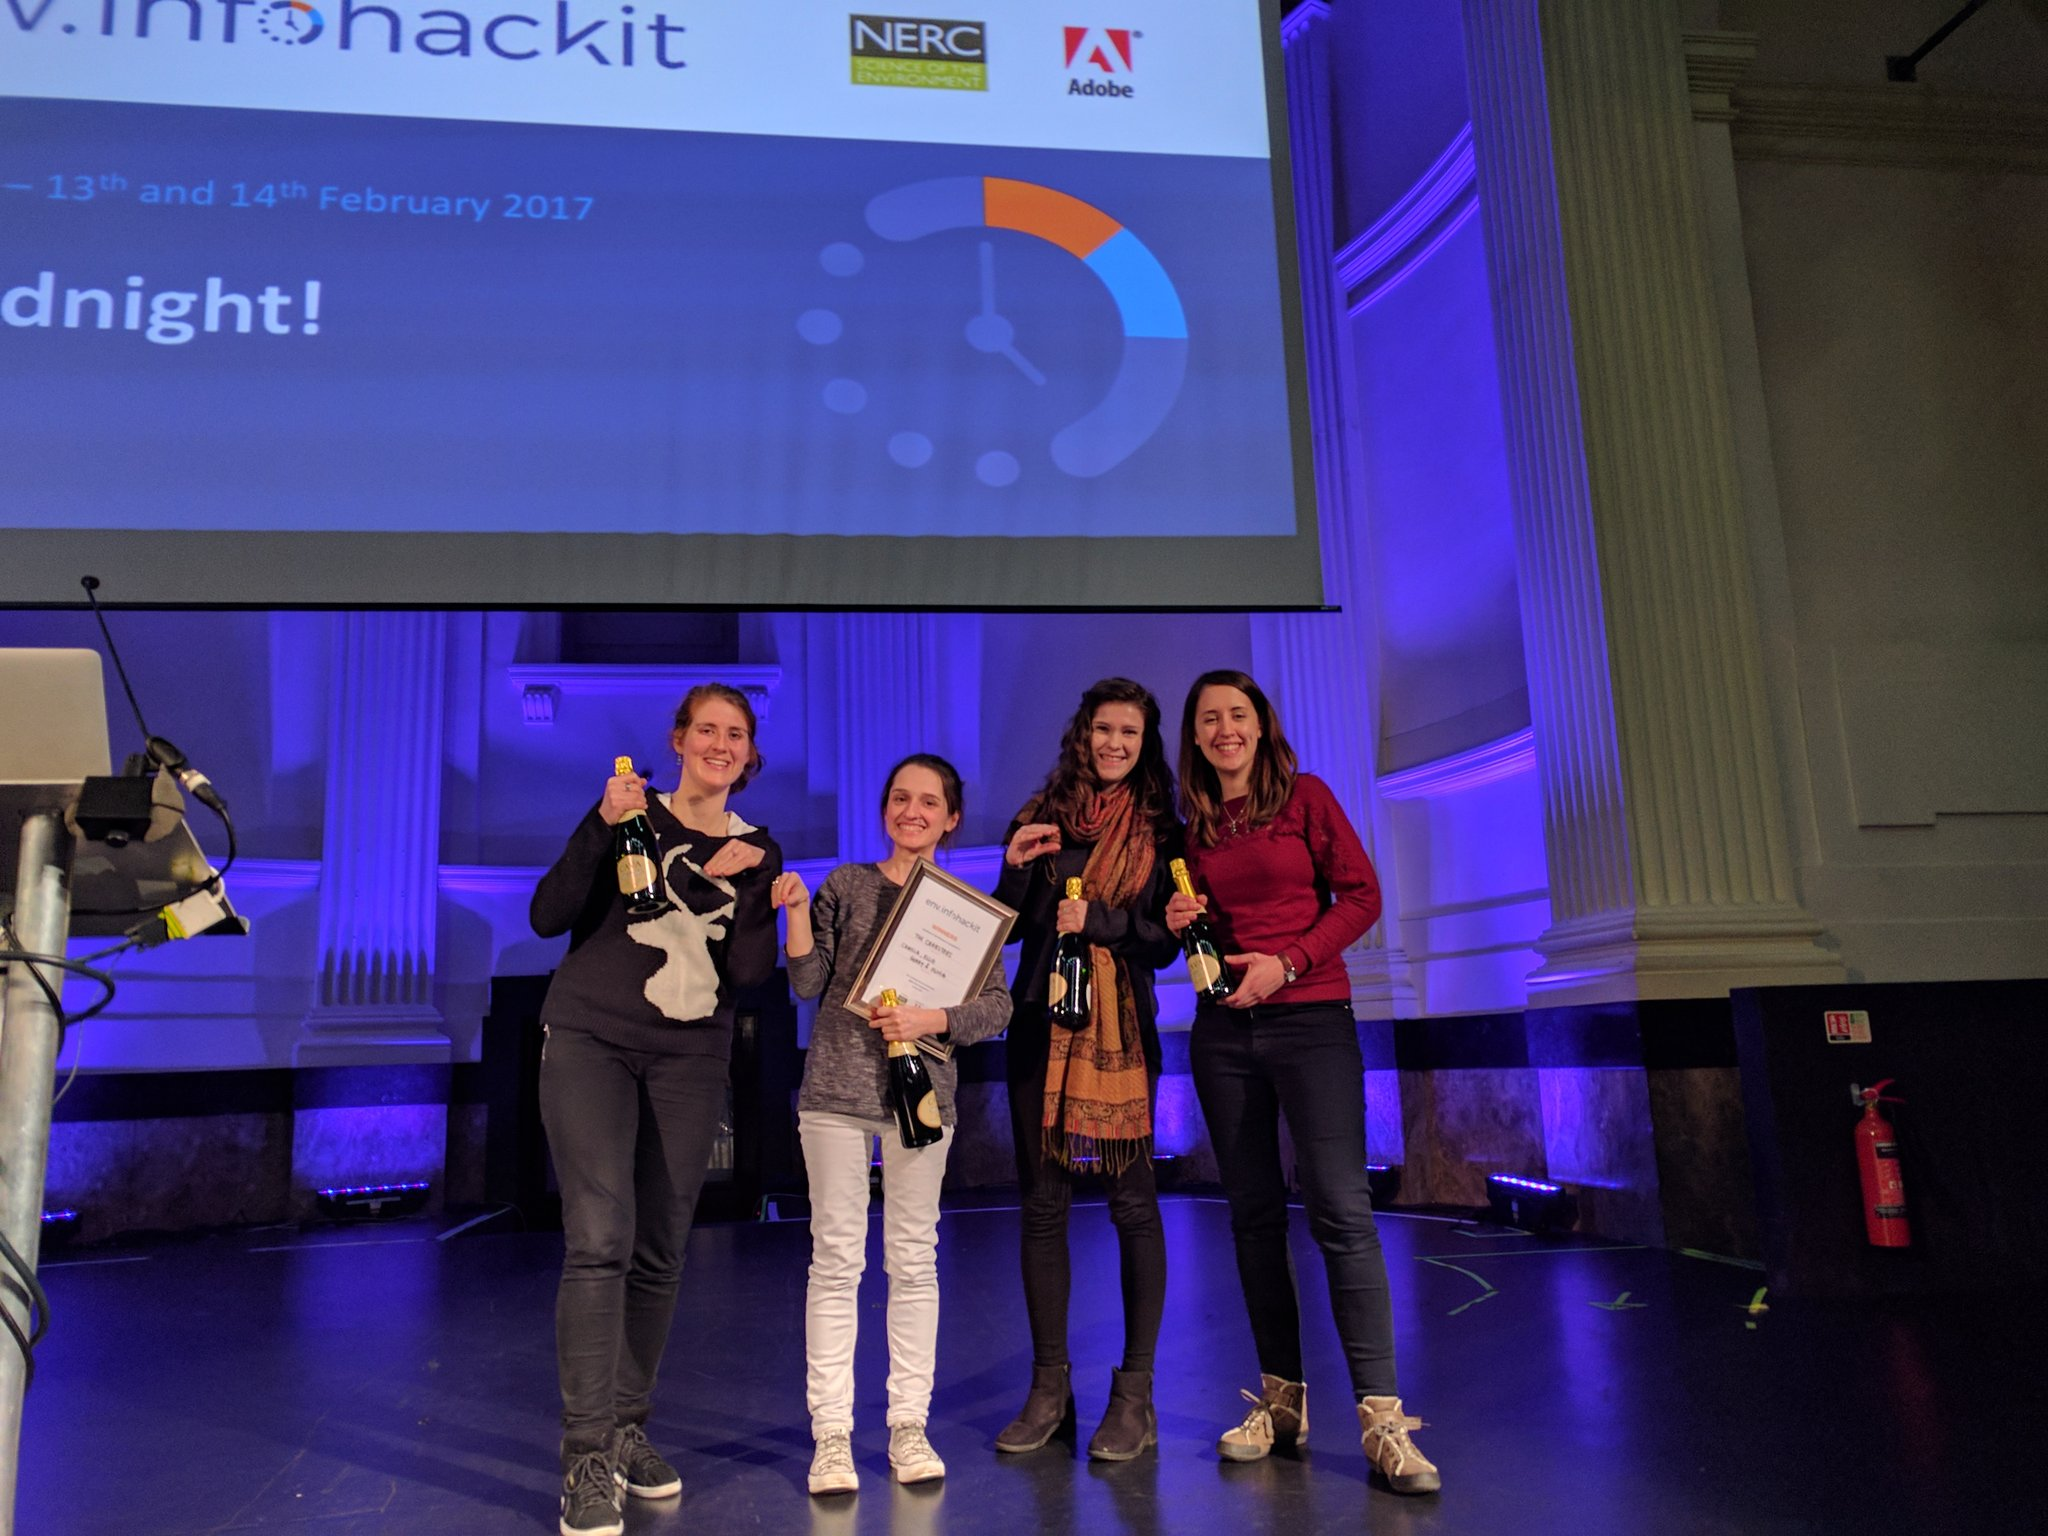 And the Crabsters have won #infohackit #Norwich https://t.co/tdIezF1FwM